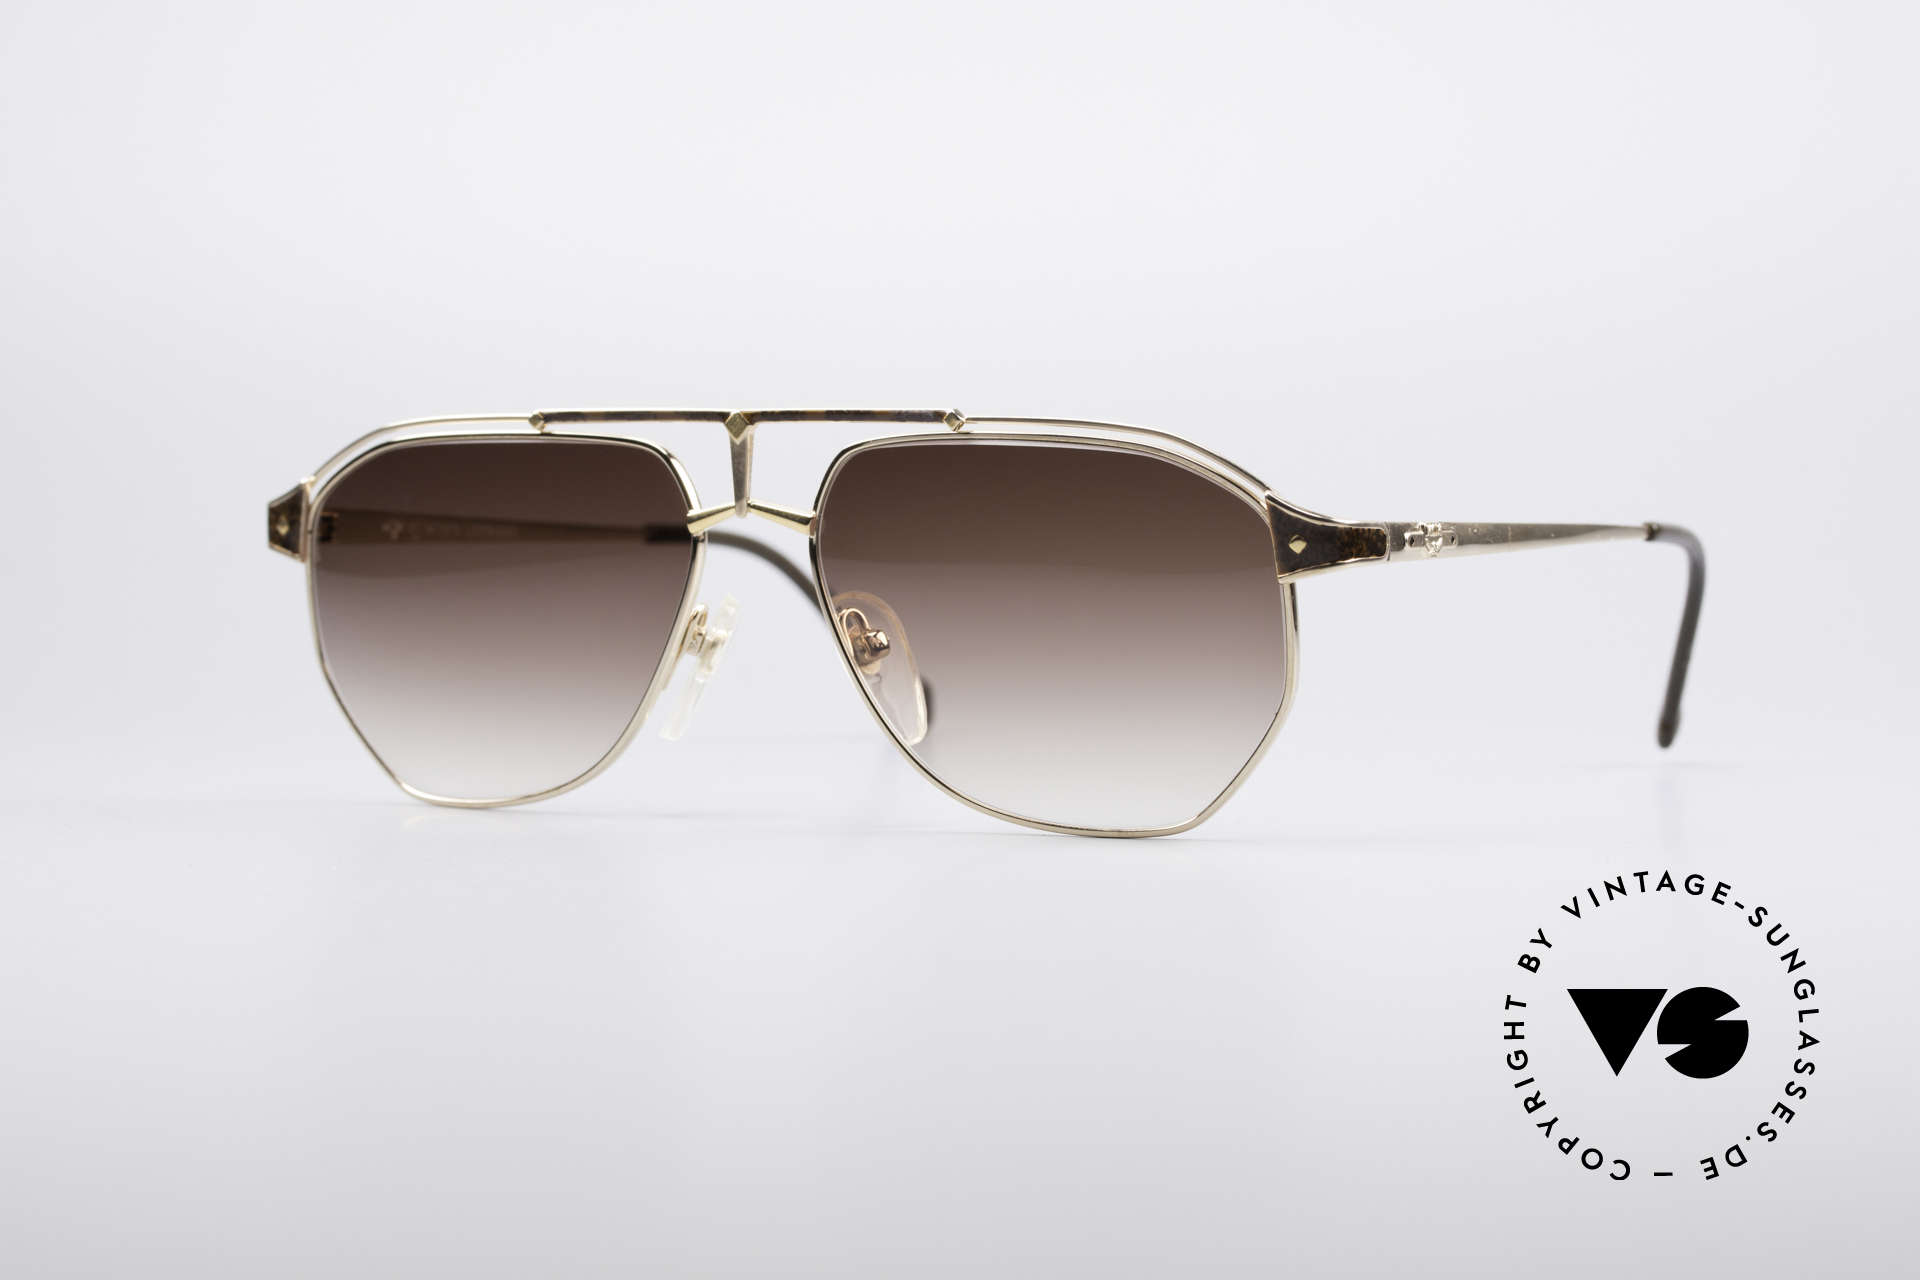 MCM München 6 XL 90's Luxury Shades, extra large designer shades by MCM of the early 90's, Made for Men